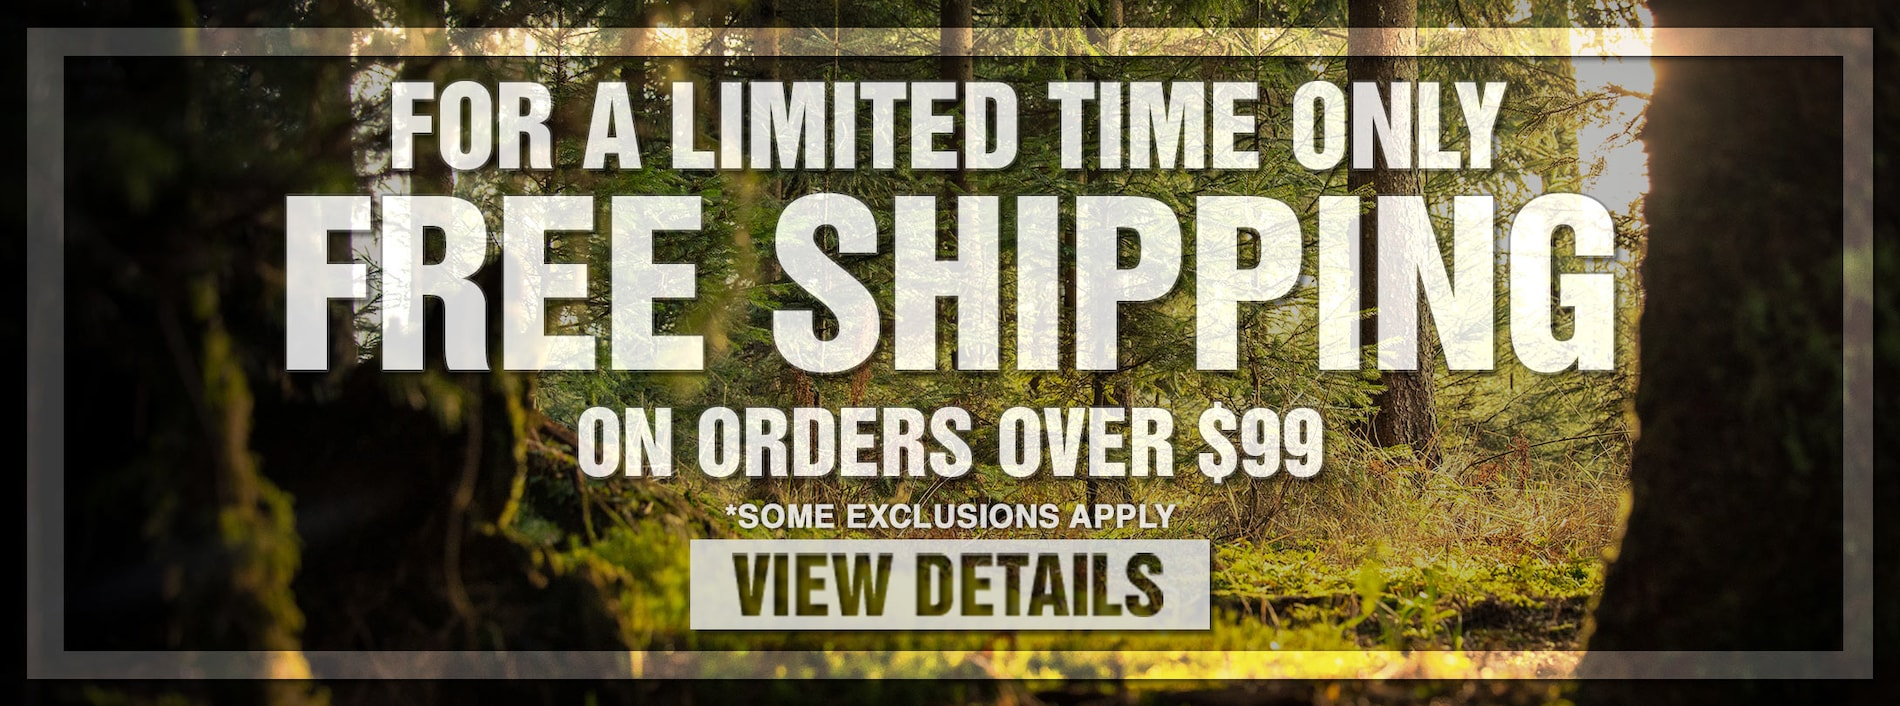 Free Shipping on $99 Orders